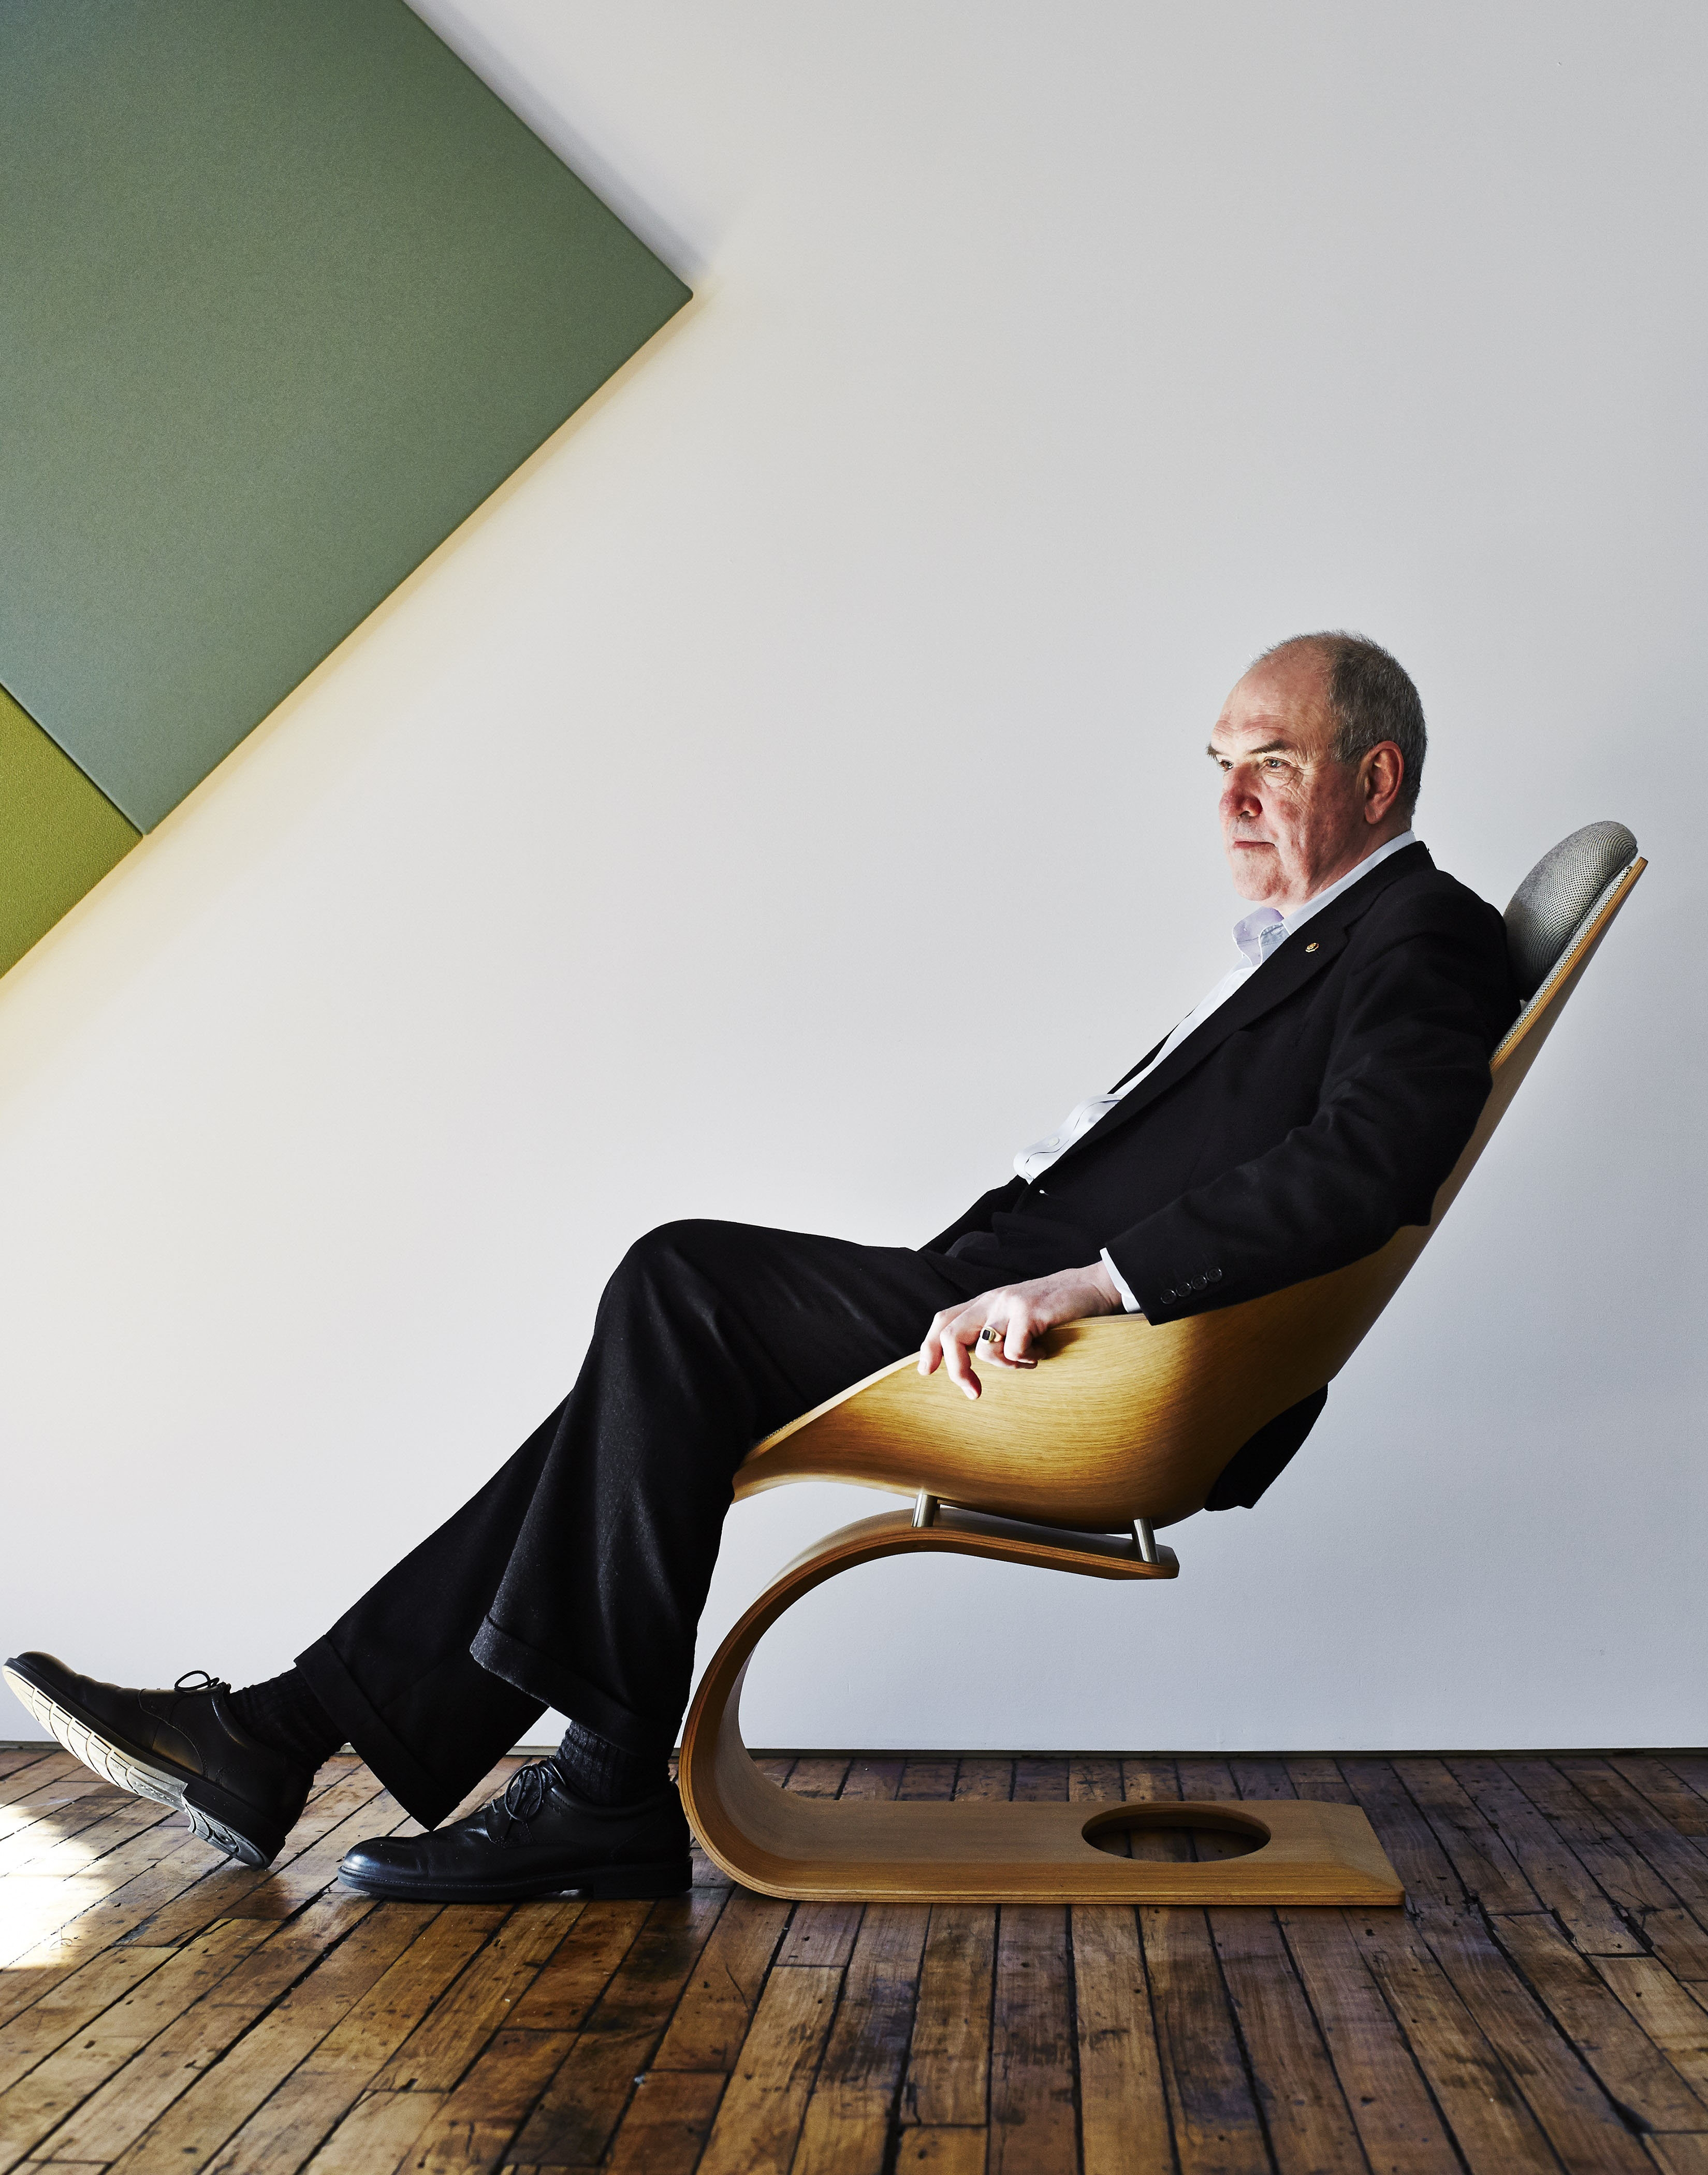 Witold Rybczynski will speak about chairs at the Albright-Knox Art Gallery on Sunday.